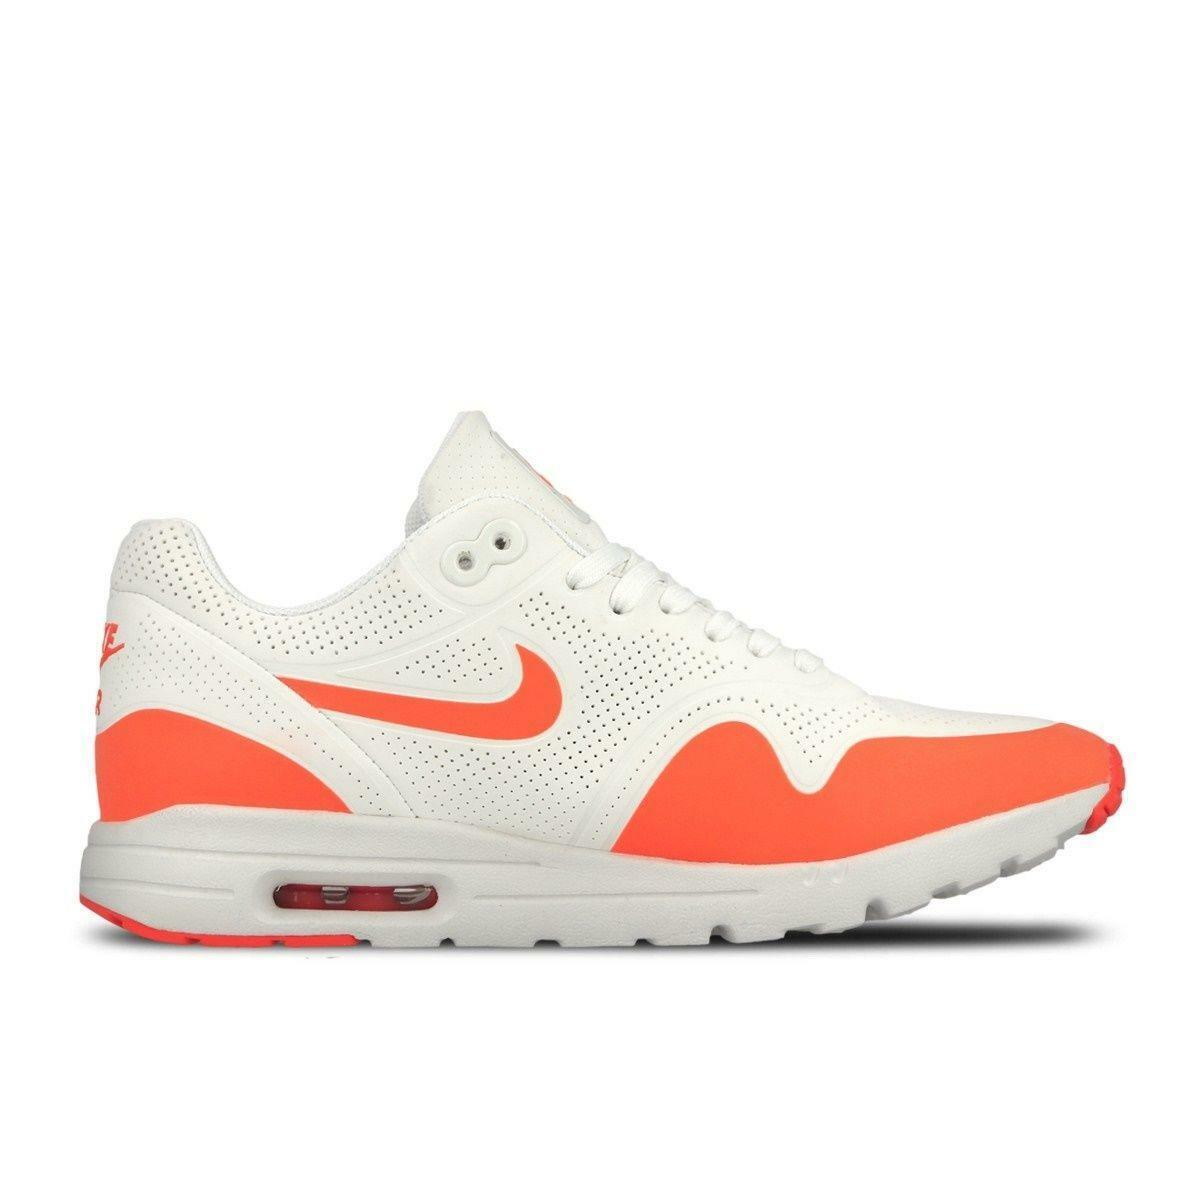 Womens NIKE AIR MAX 1 ULTRA MOIRE White Trainers 704995 103